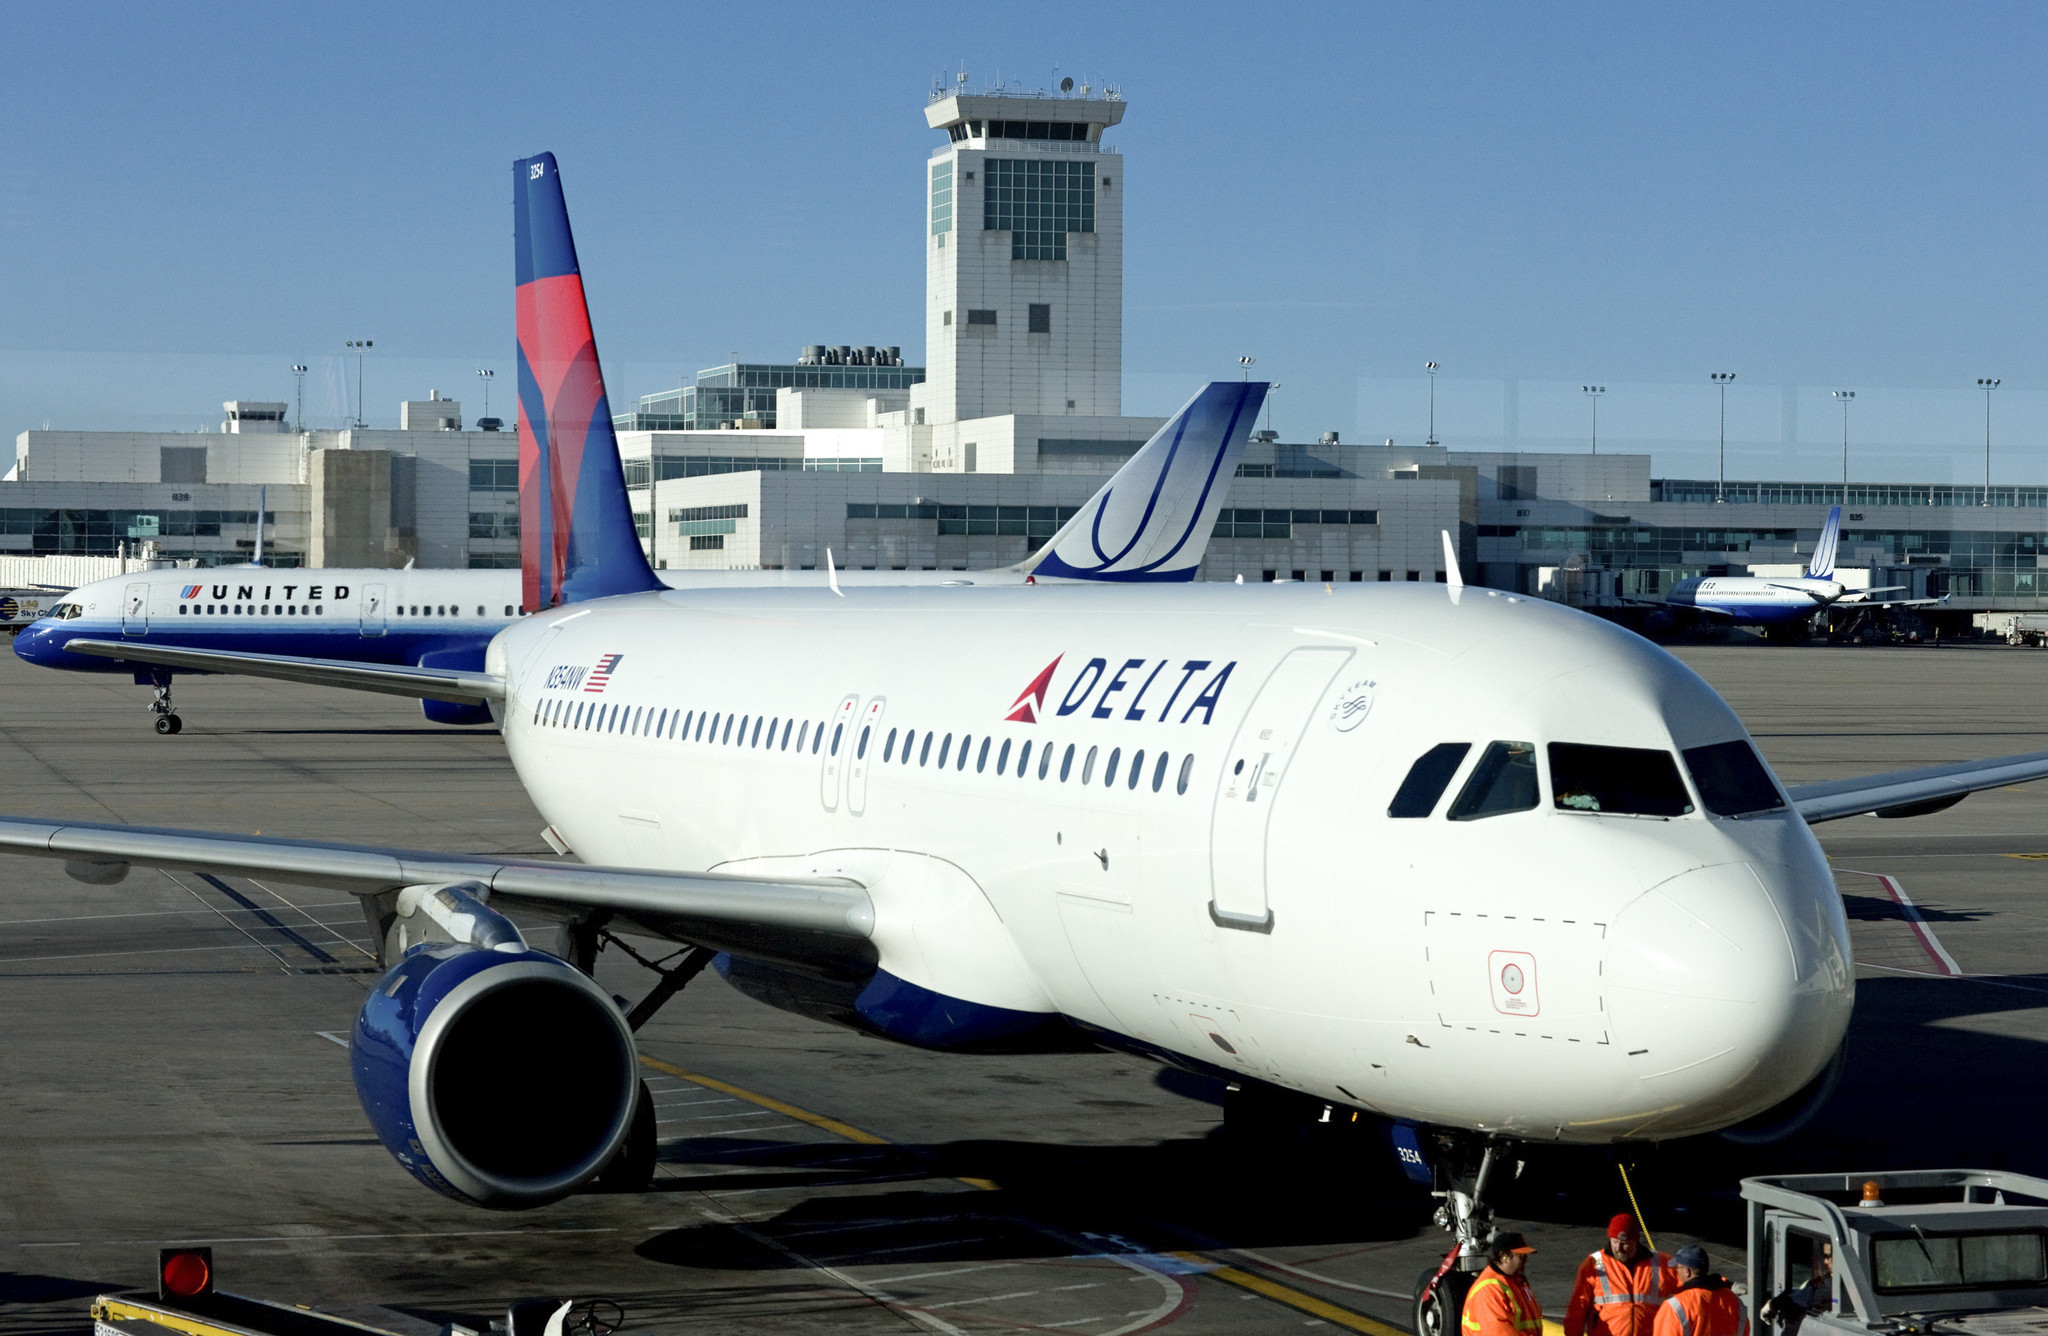 Delta to add seats with outlets and bigger overhead bins on 225 planes